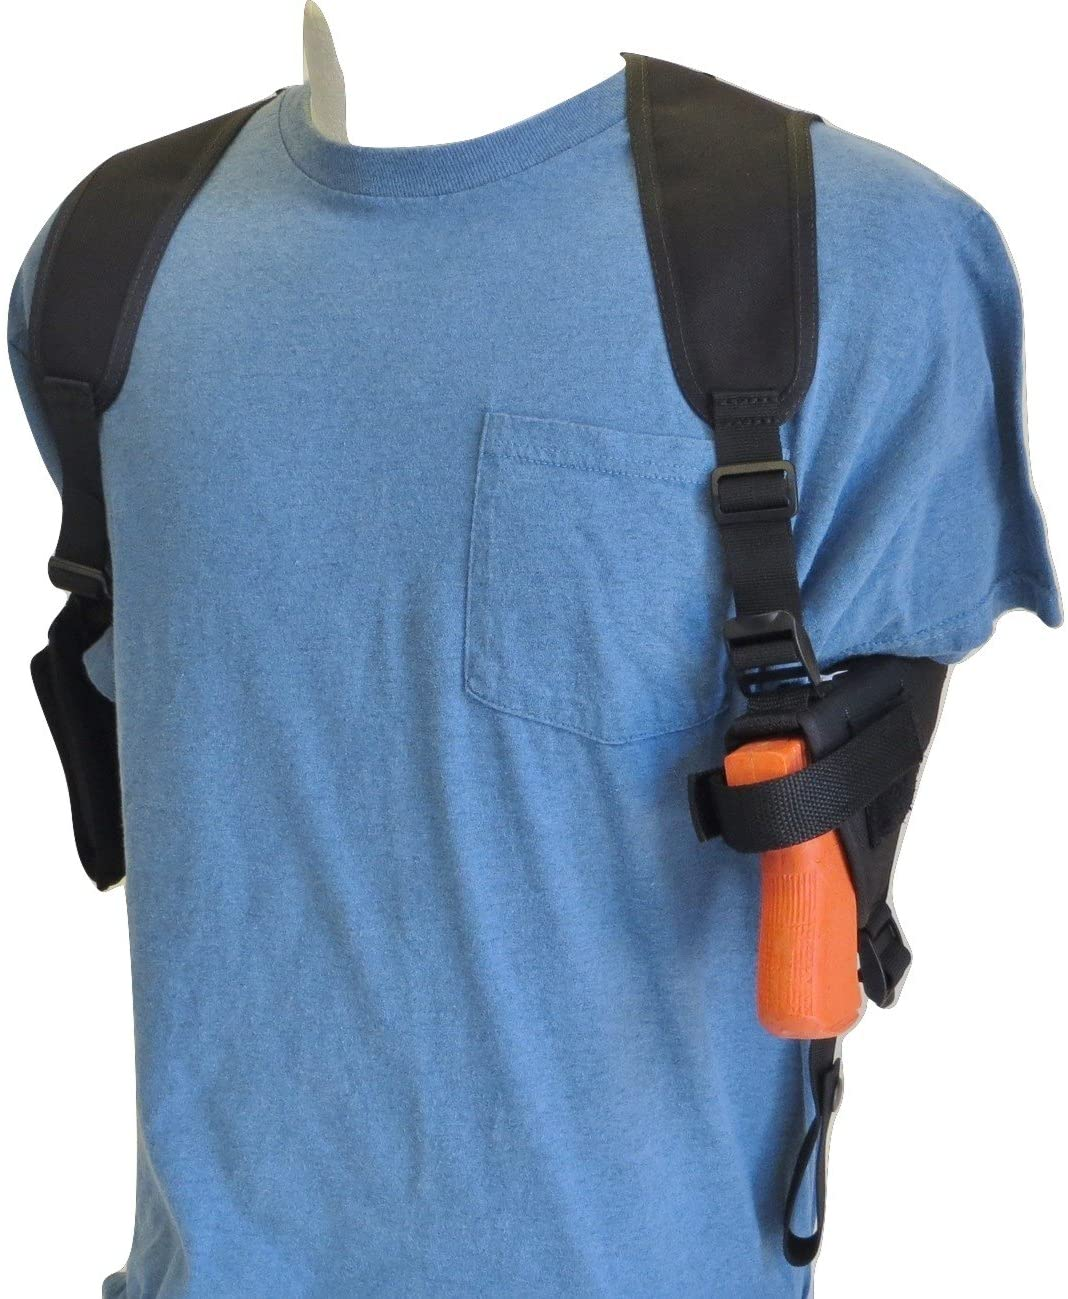 Federal Shoulder Holster for Ruger LC9, LC9s, EC9s & LC380 Pistols Without Laser